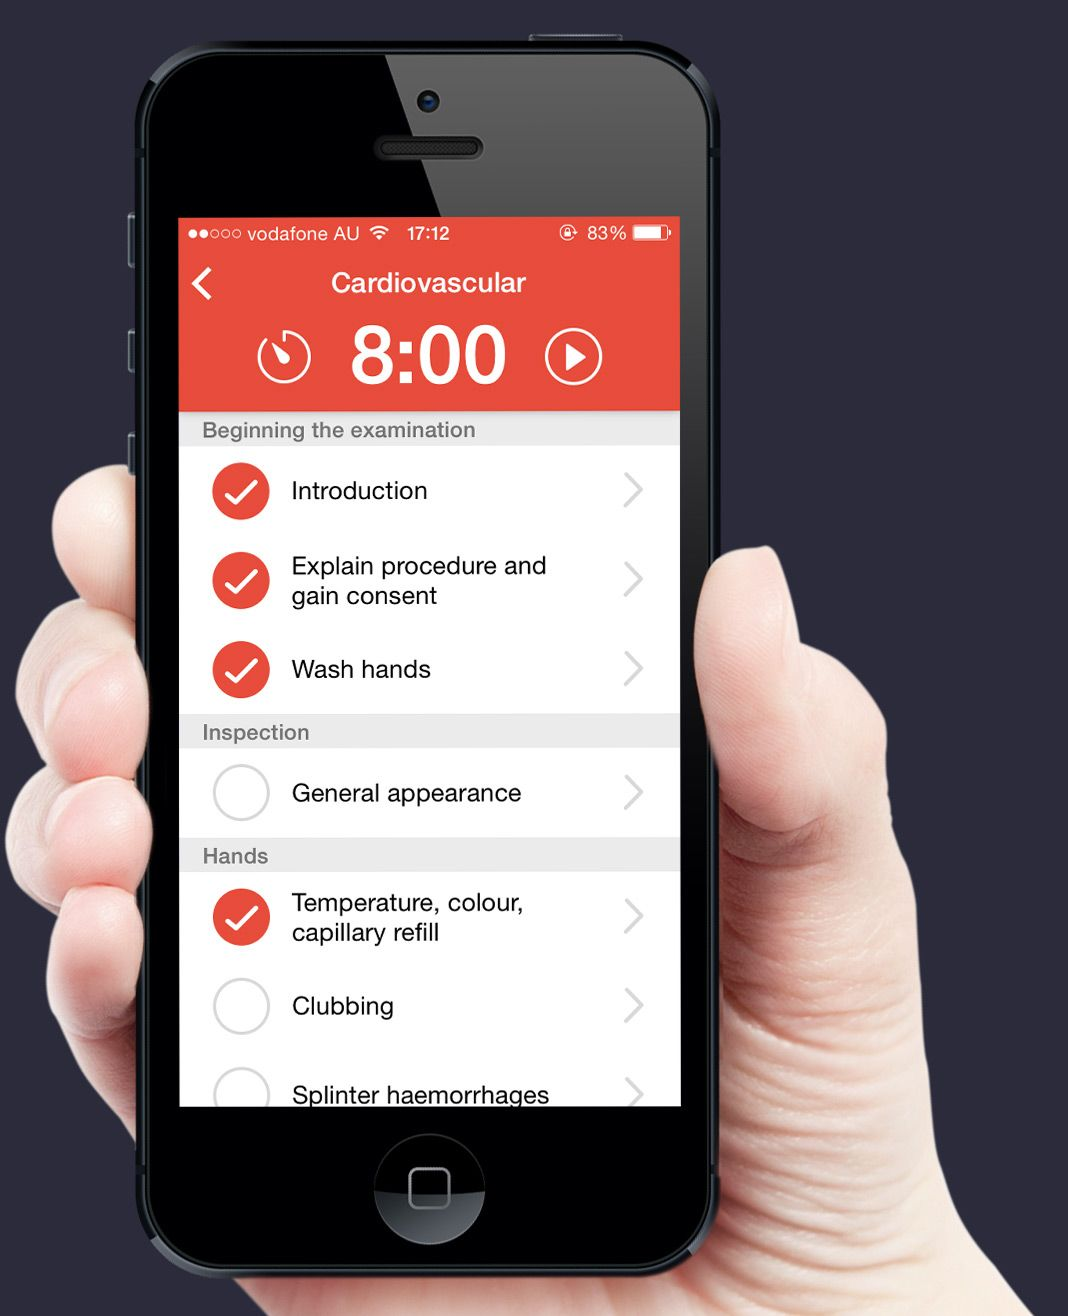 osceApp free and open source app for medical students